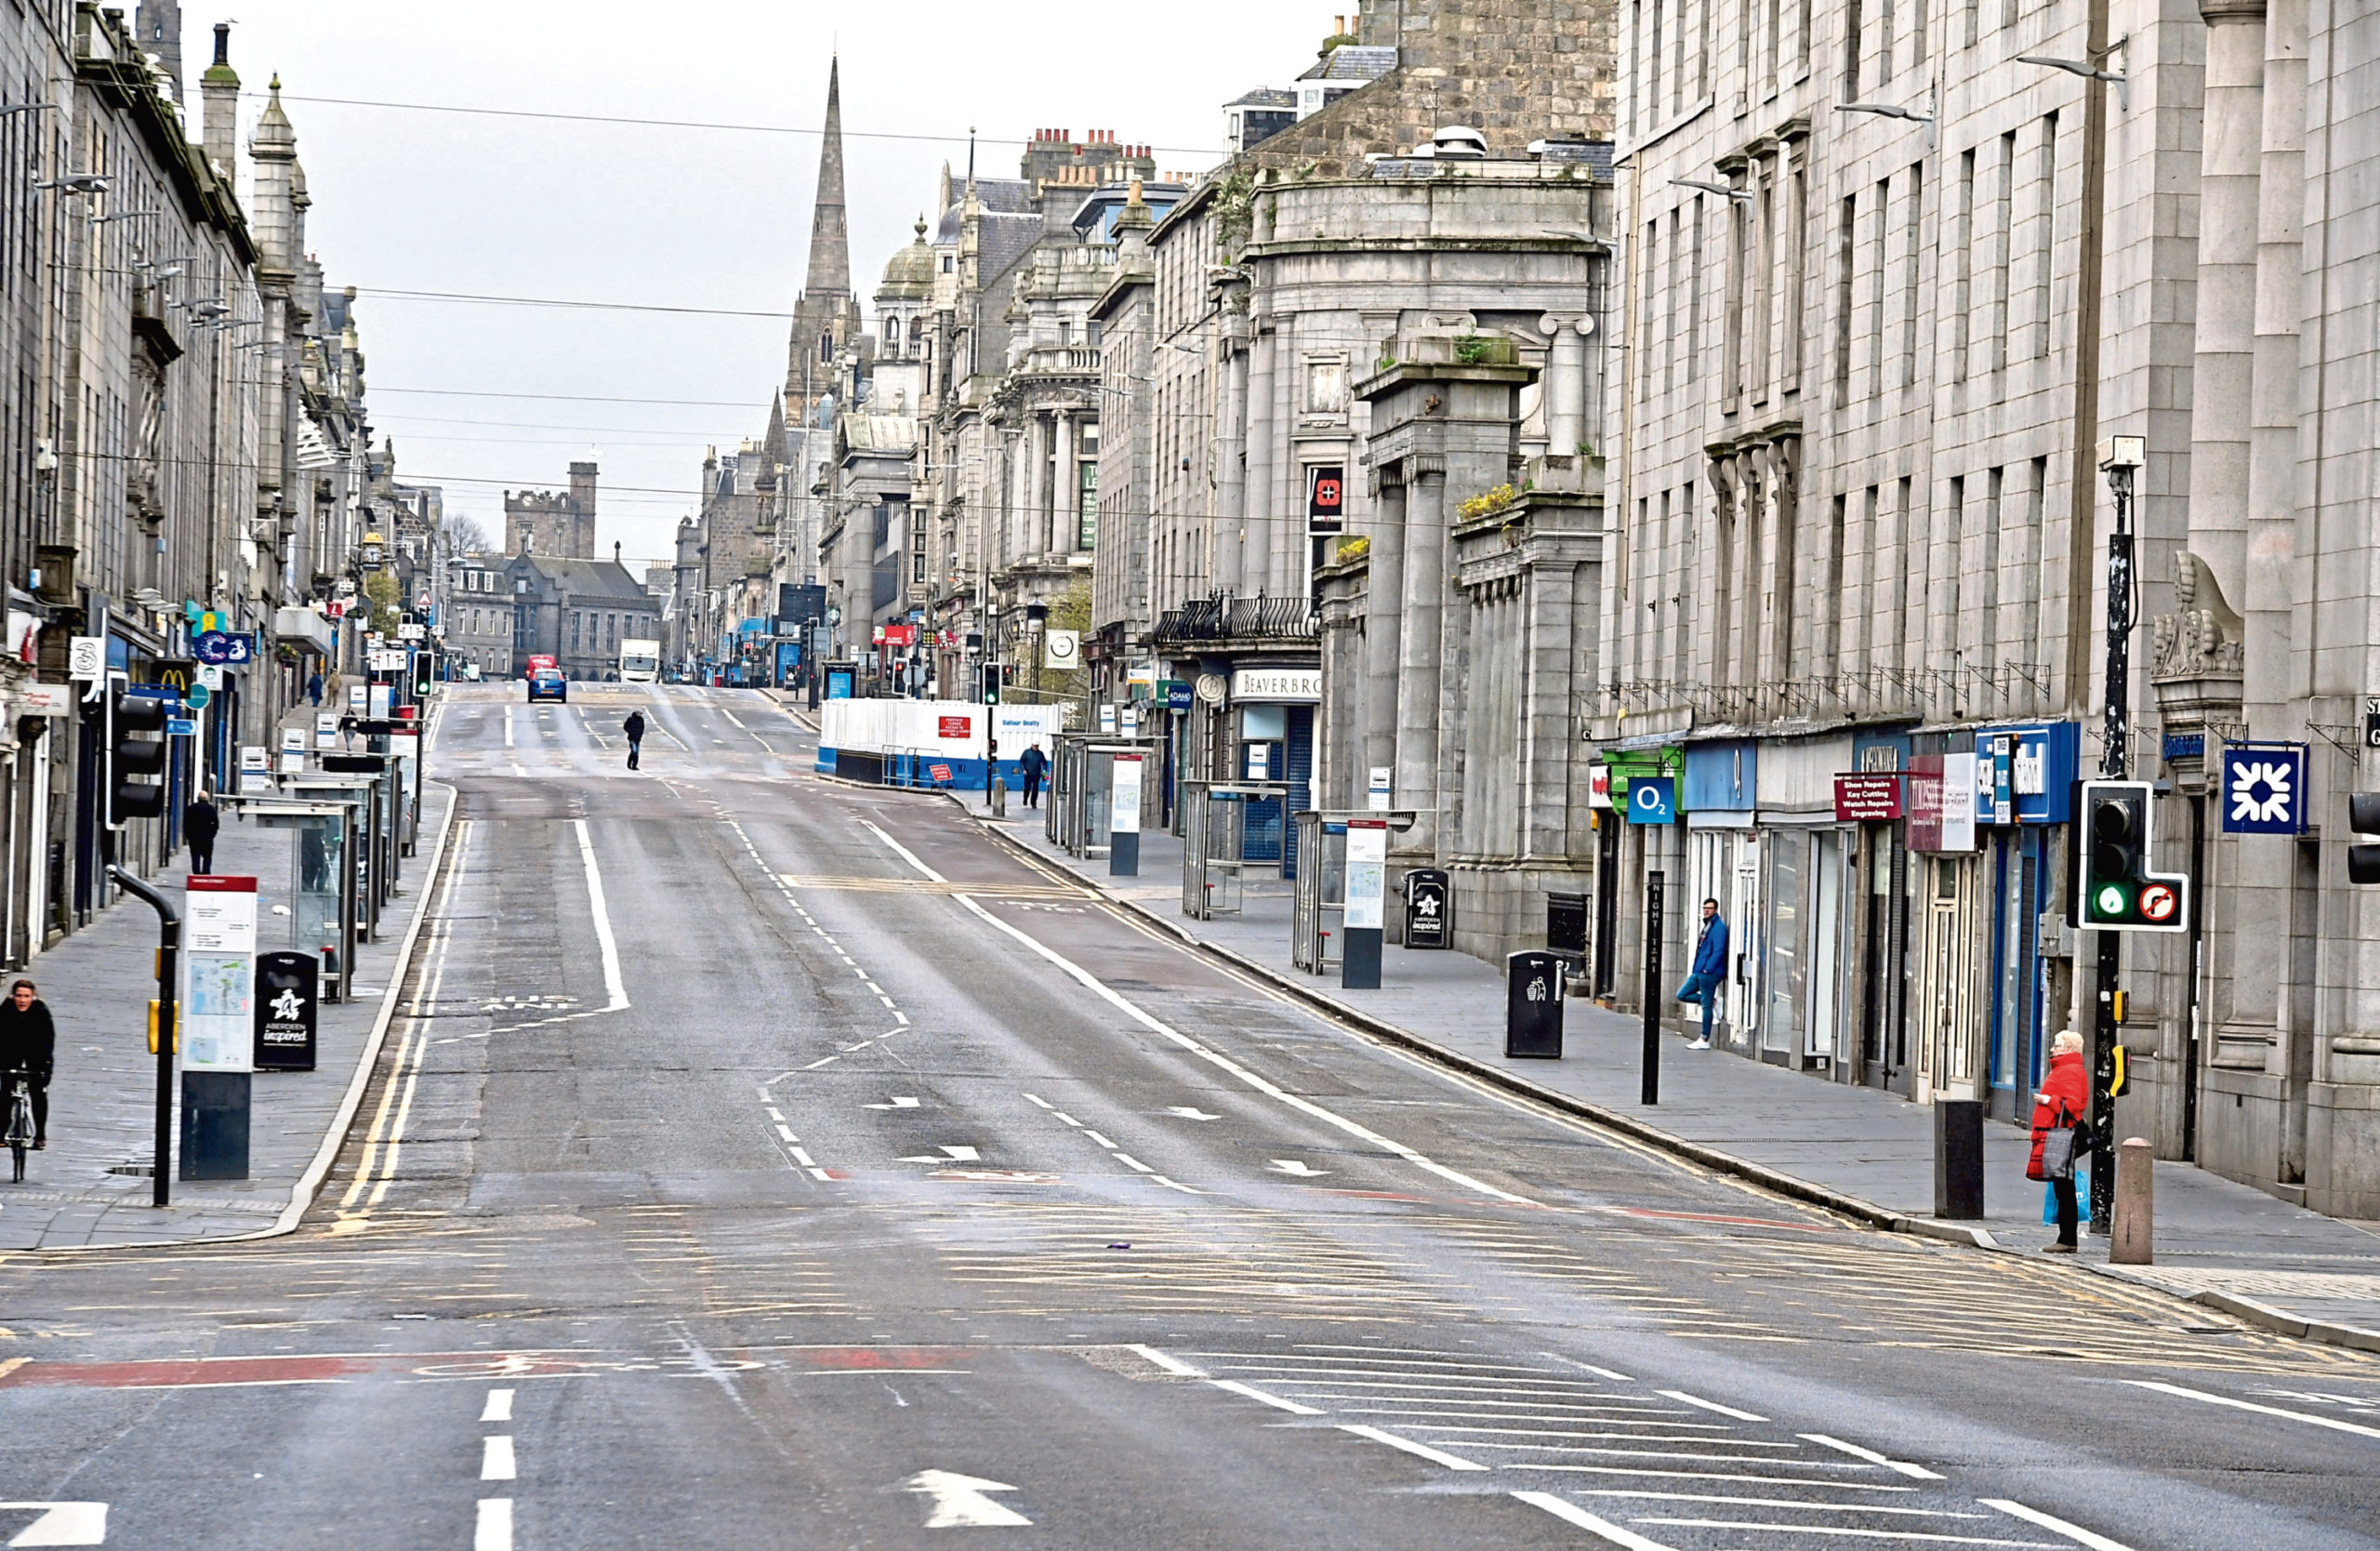 Union Street in Aberdeen